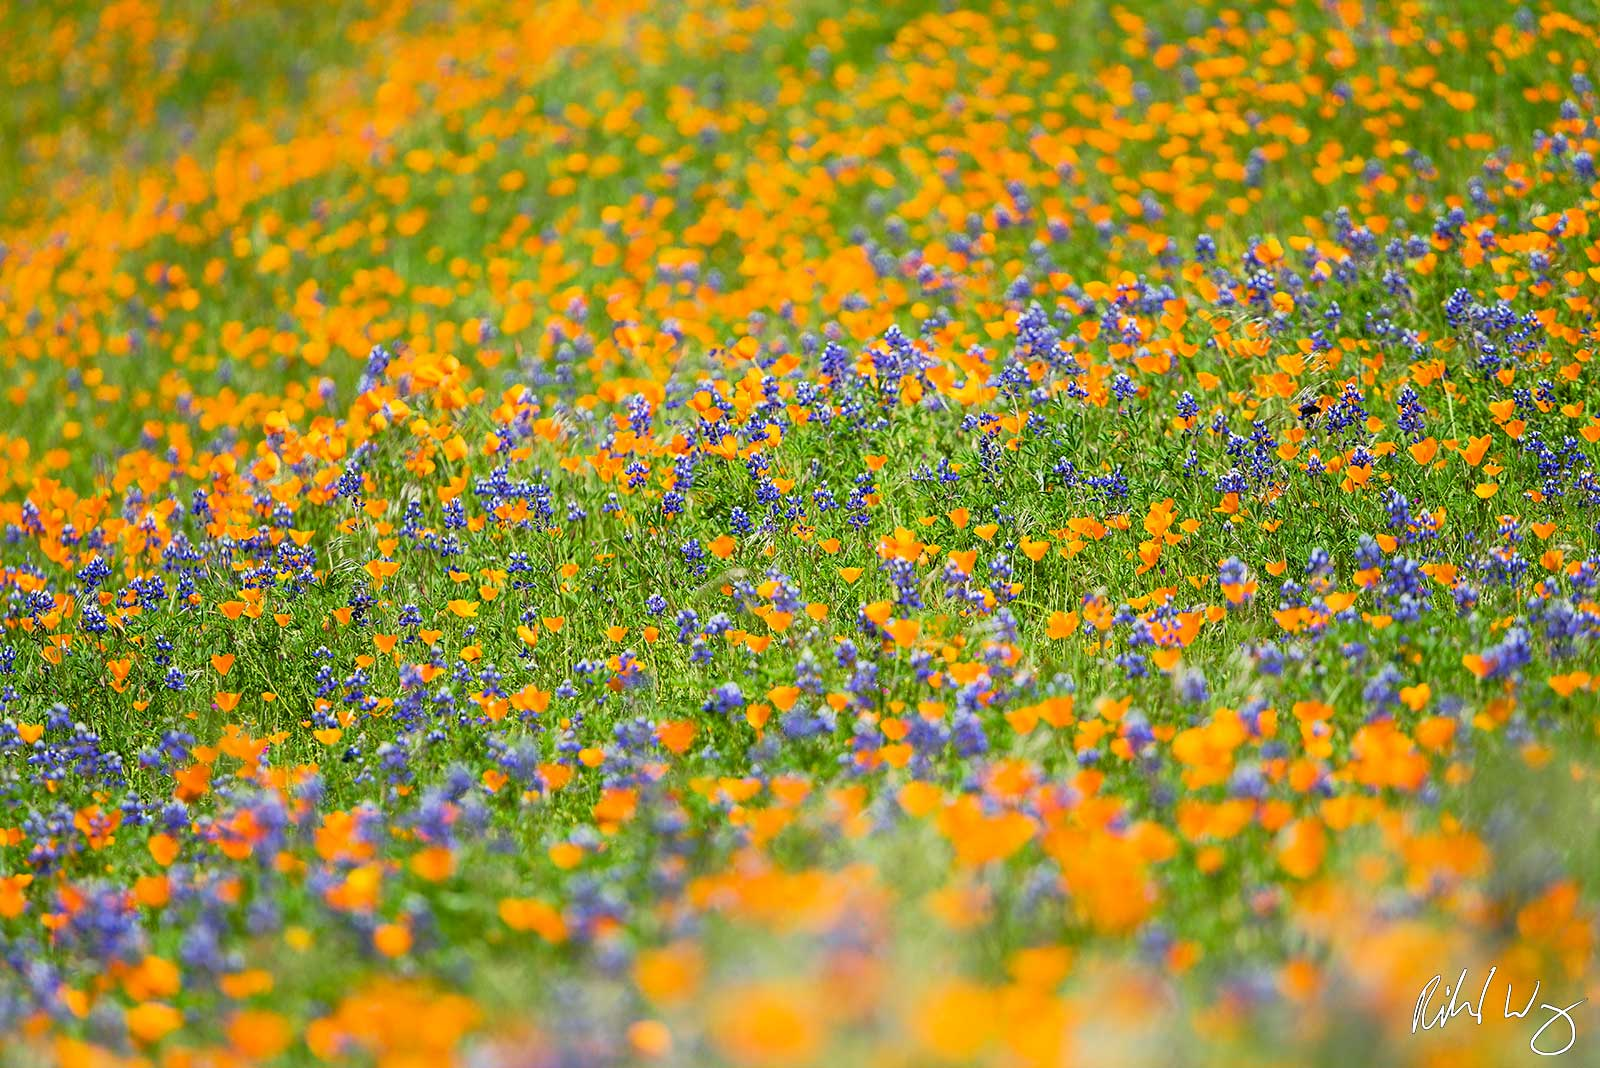 Golden Poppies & Lupine, Merced River Canyon, California, Photo, photo